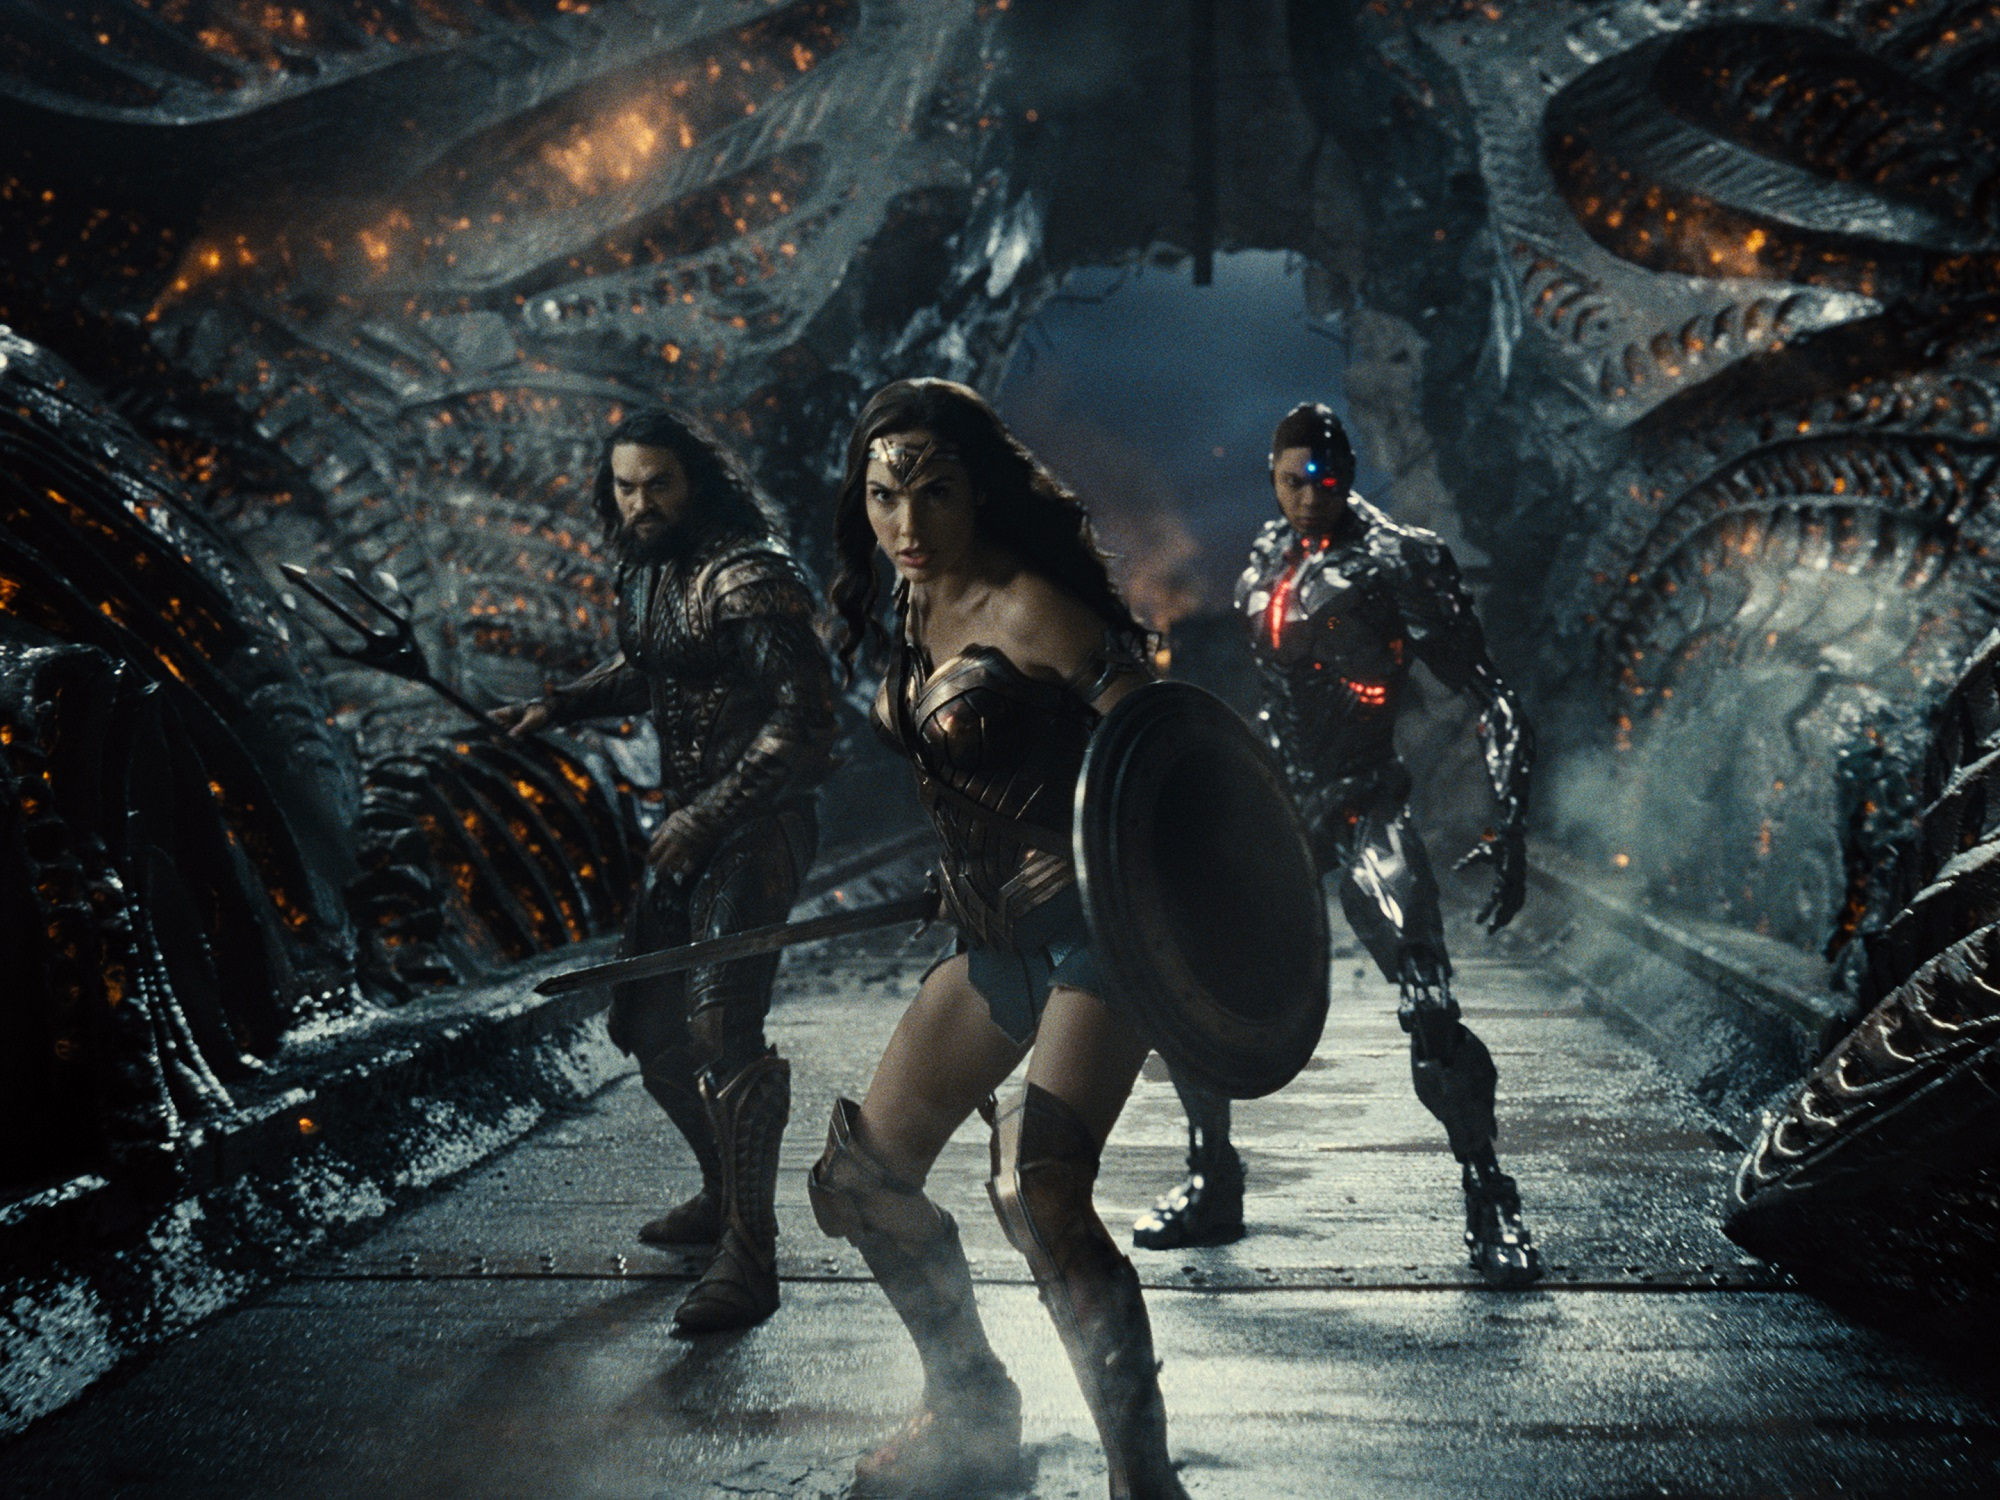 Justice League members Aquaman, Wonder Woman and Cyborg prepare for battle